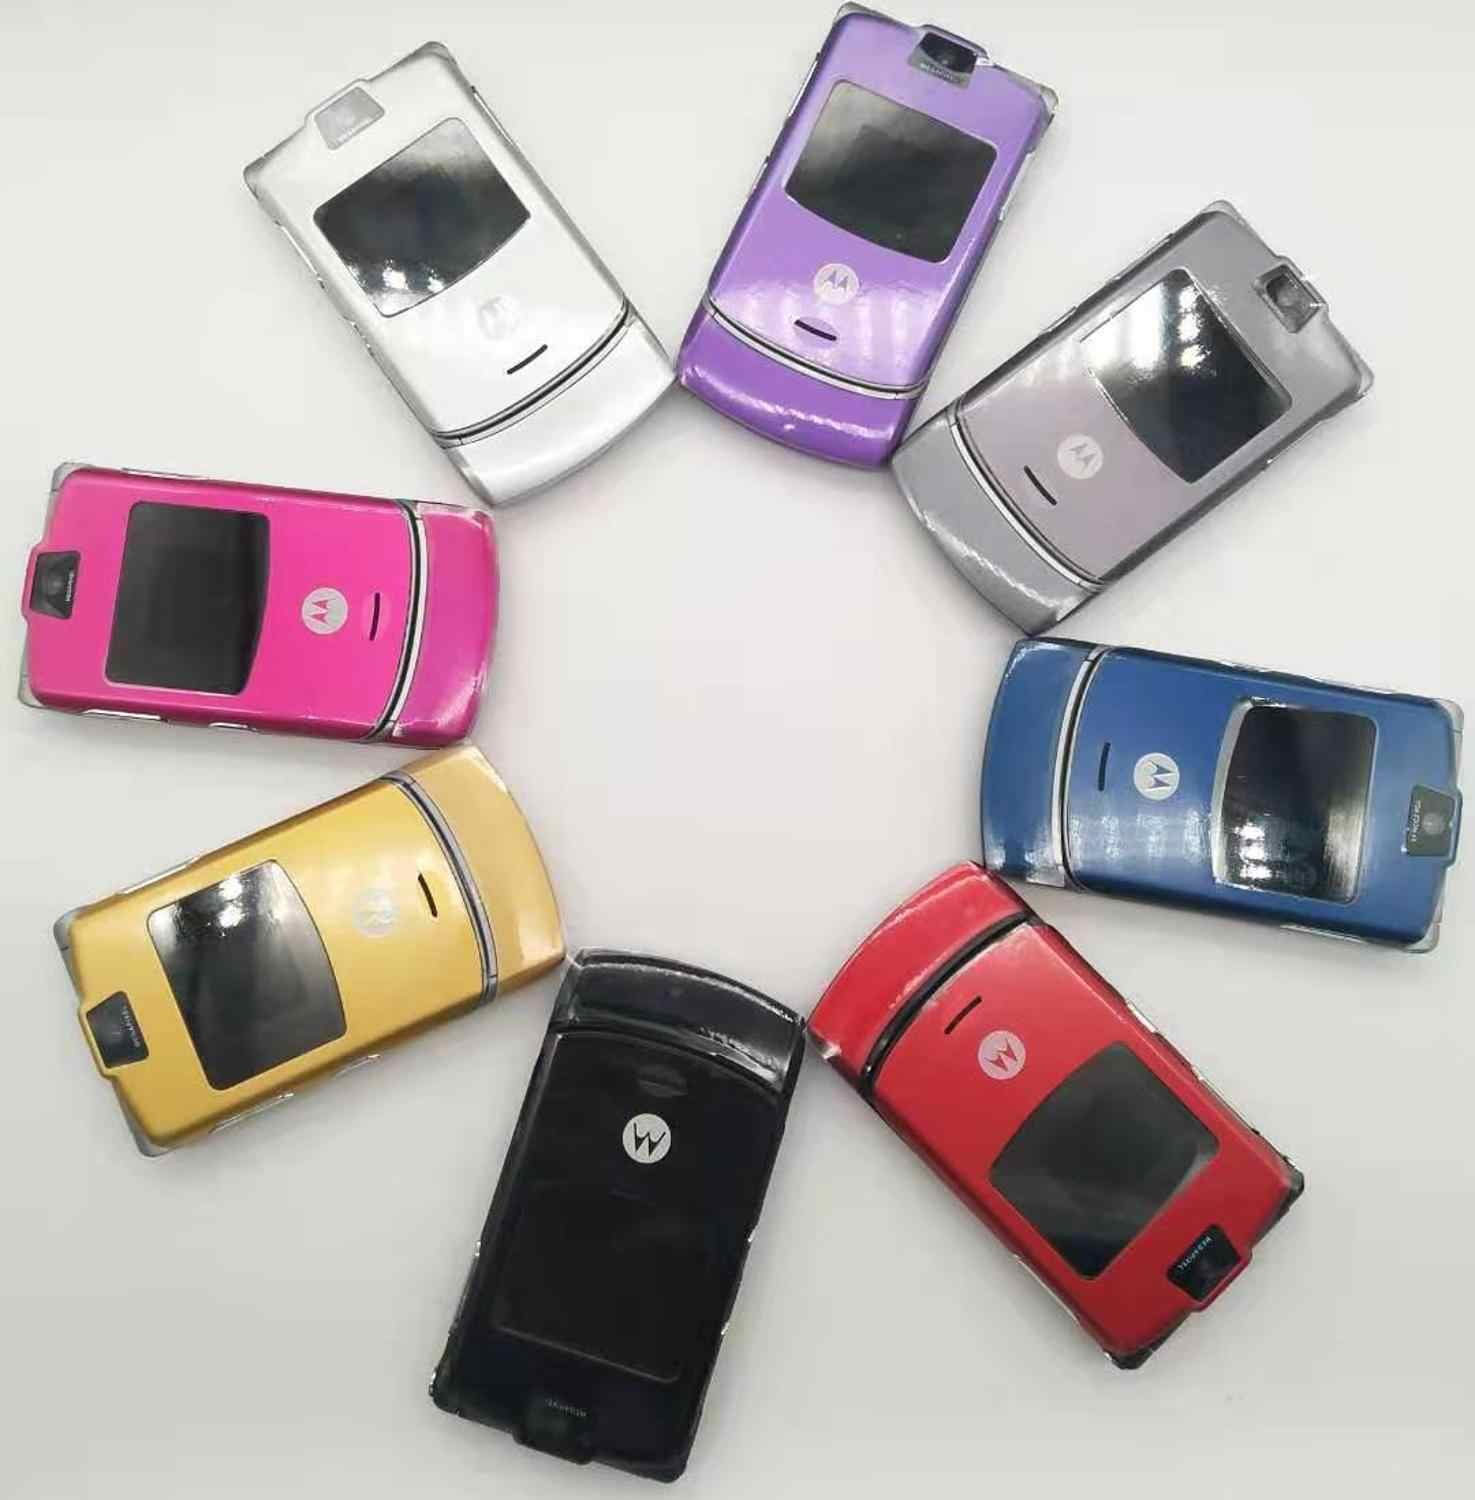 100% Original V3 World Version Flip GSM Quad Band Motorola Razr V3 mobile phone one year warranty Free shipping